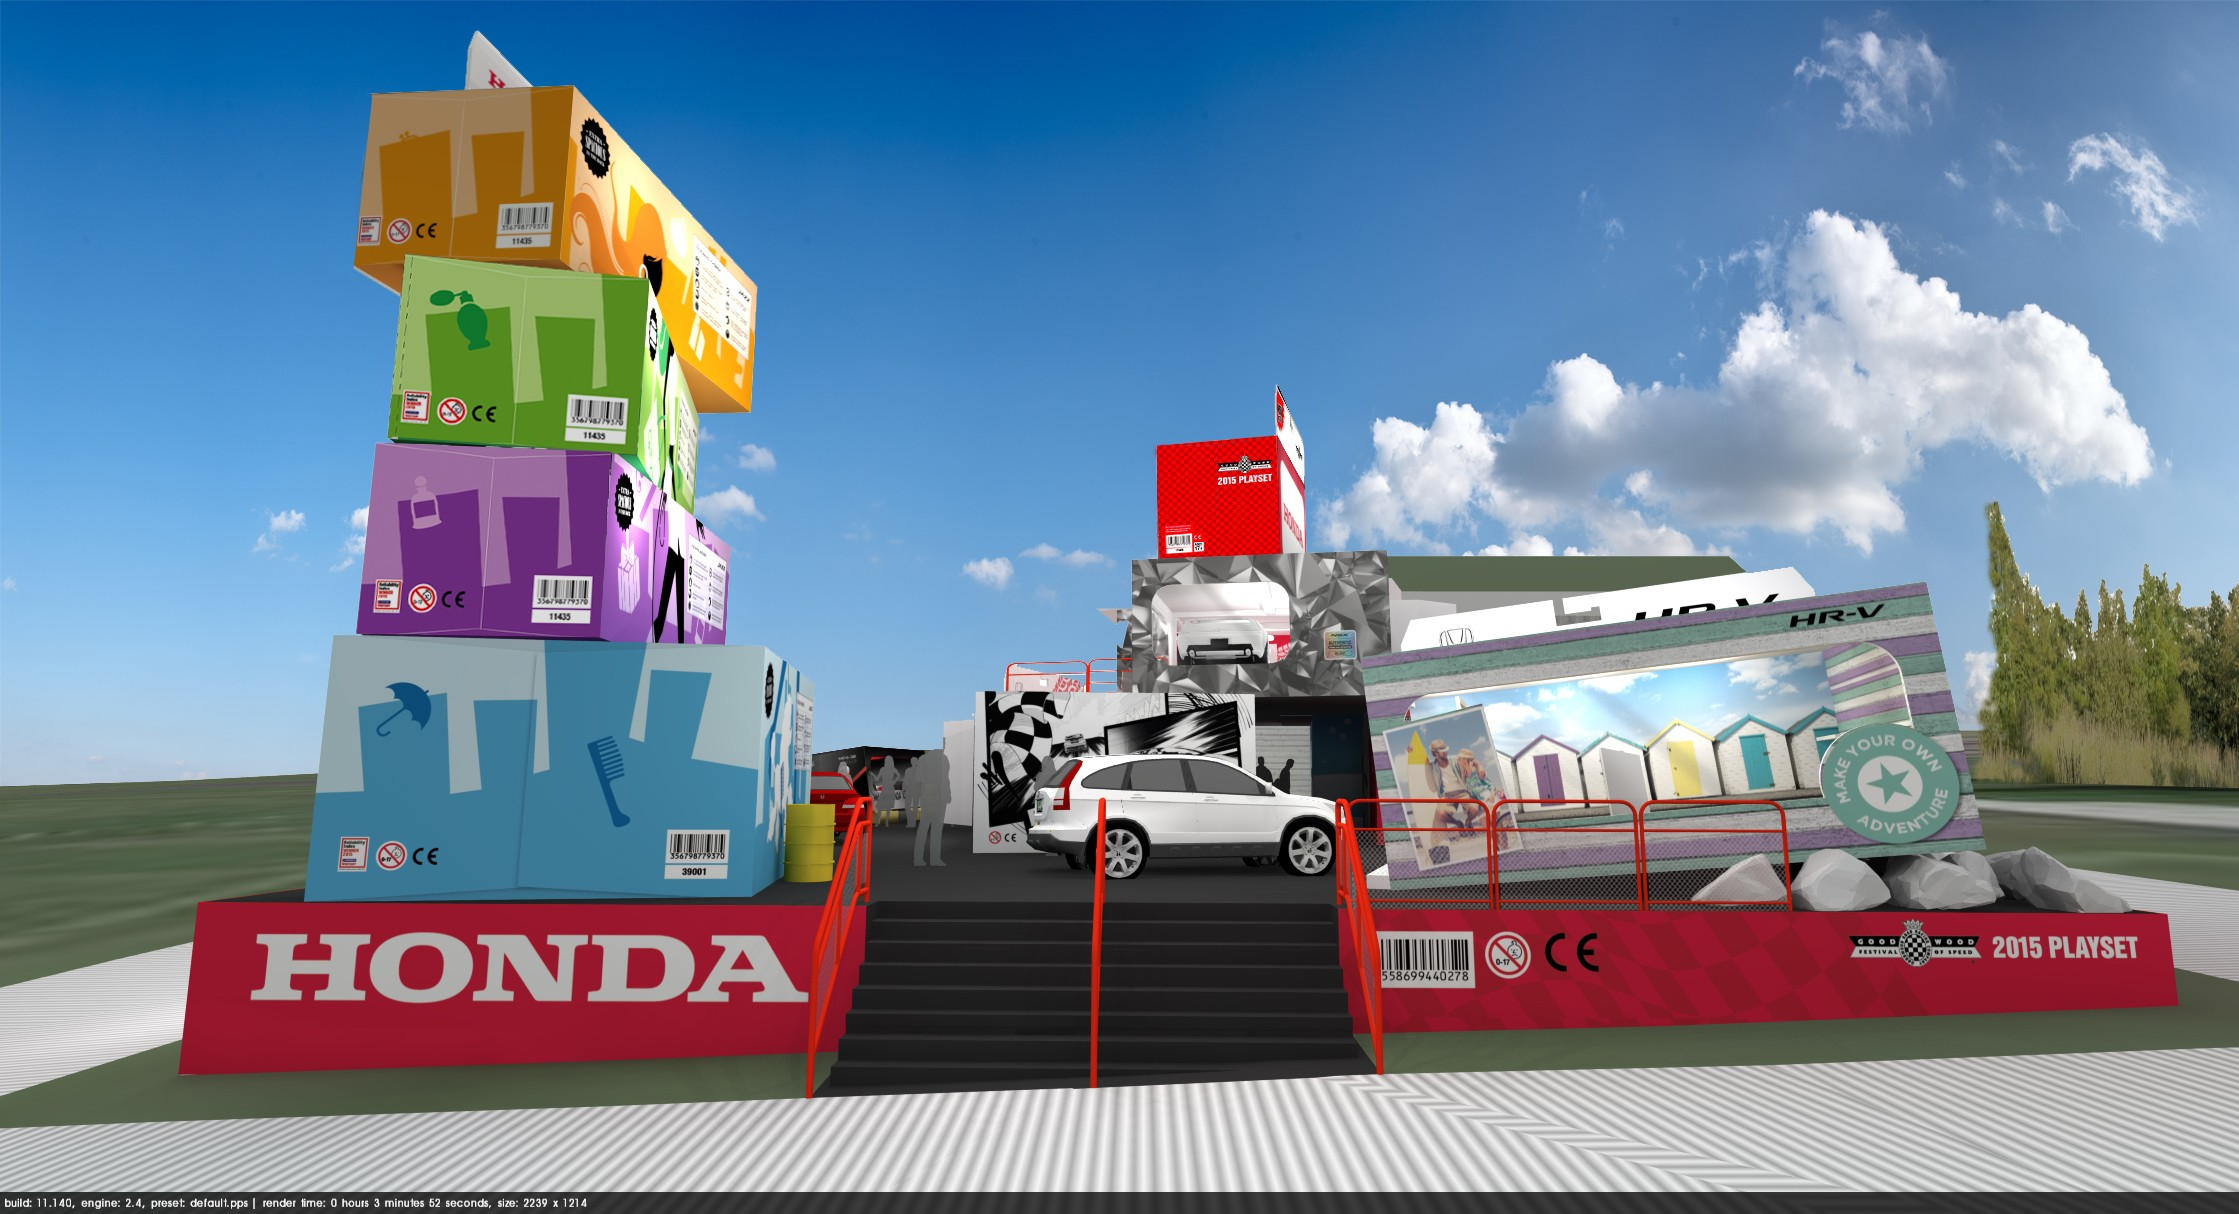 Trade Stands Goodwood Festival Speed : Honda s stand at goodwood looks a lot like the toy story